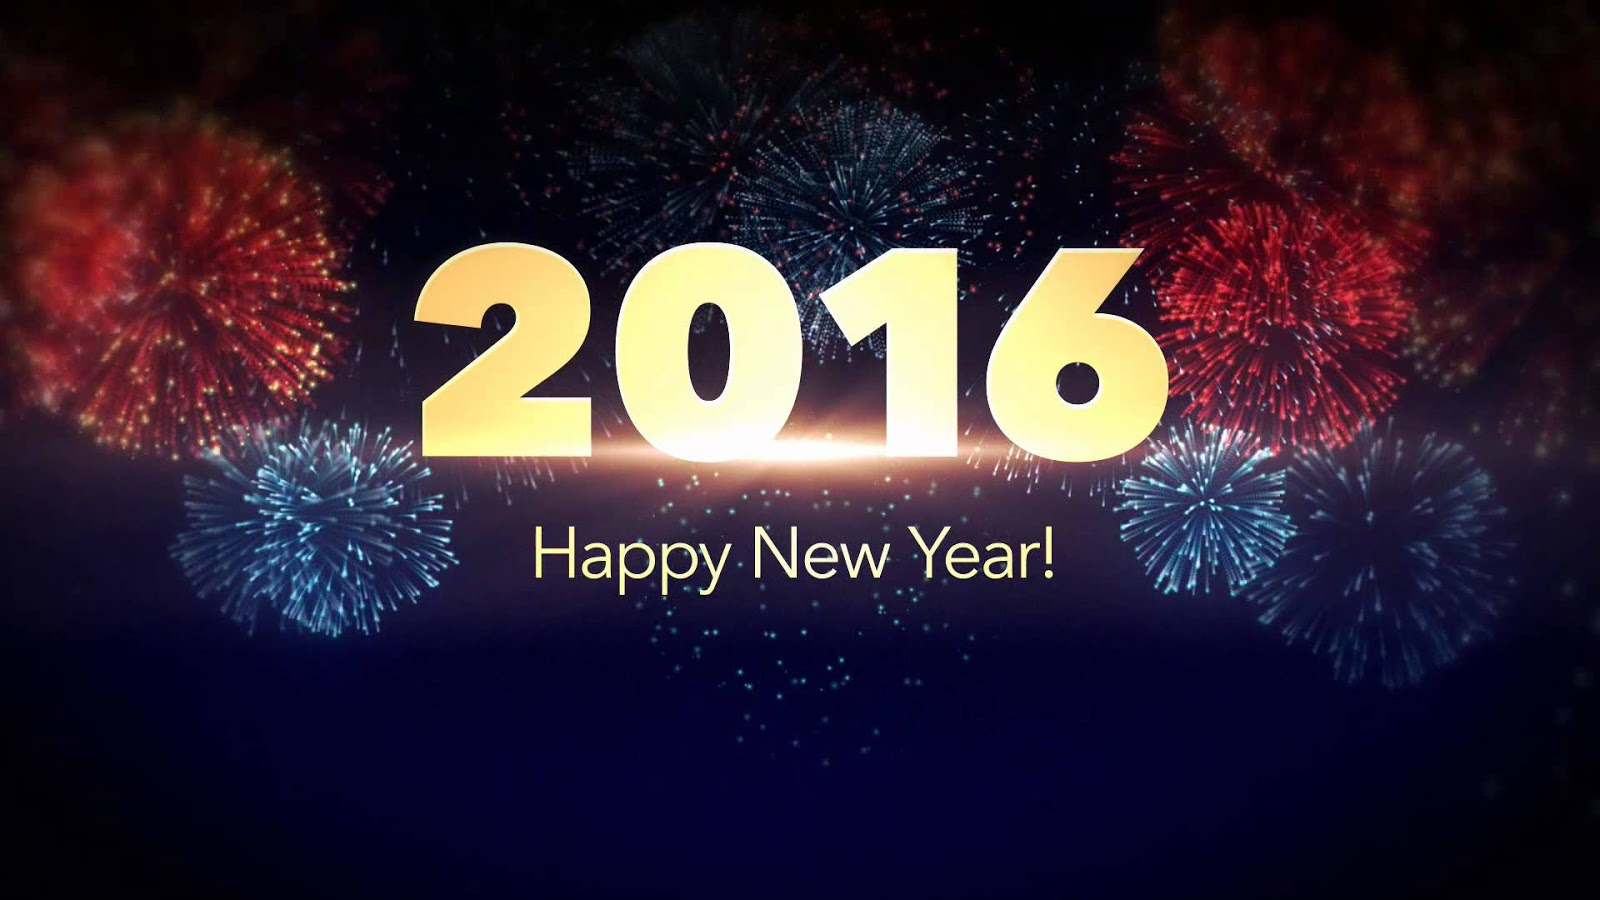 download happy new year 2016 wallpaper